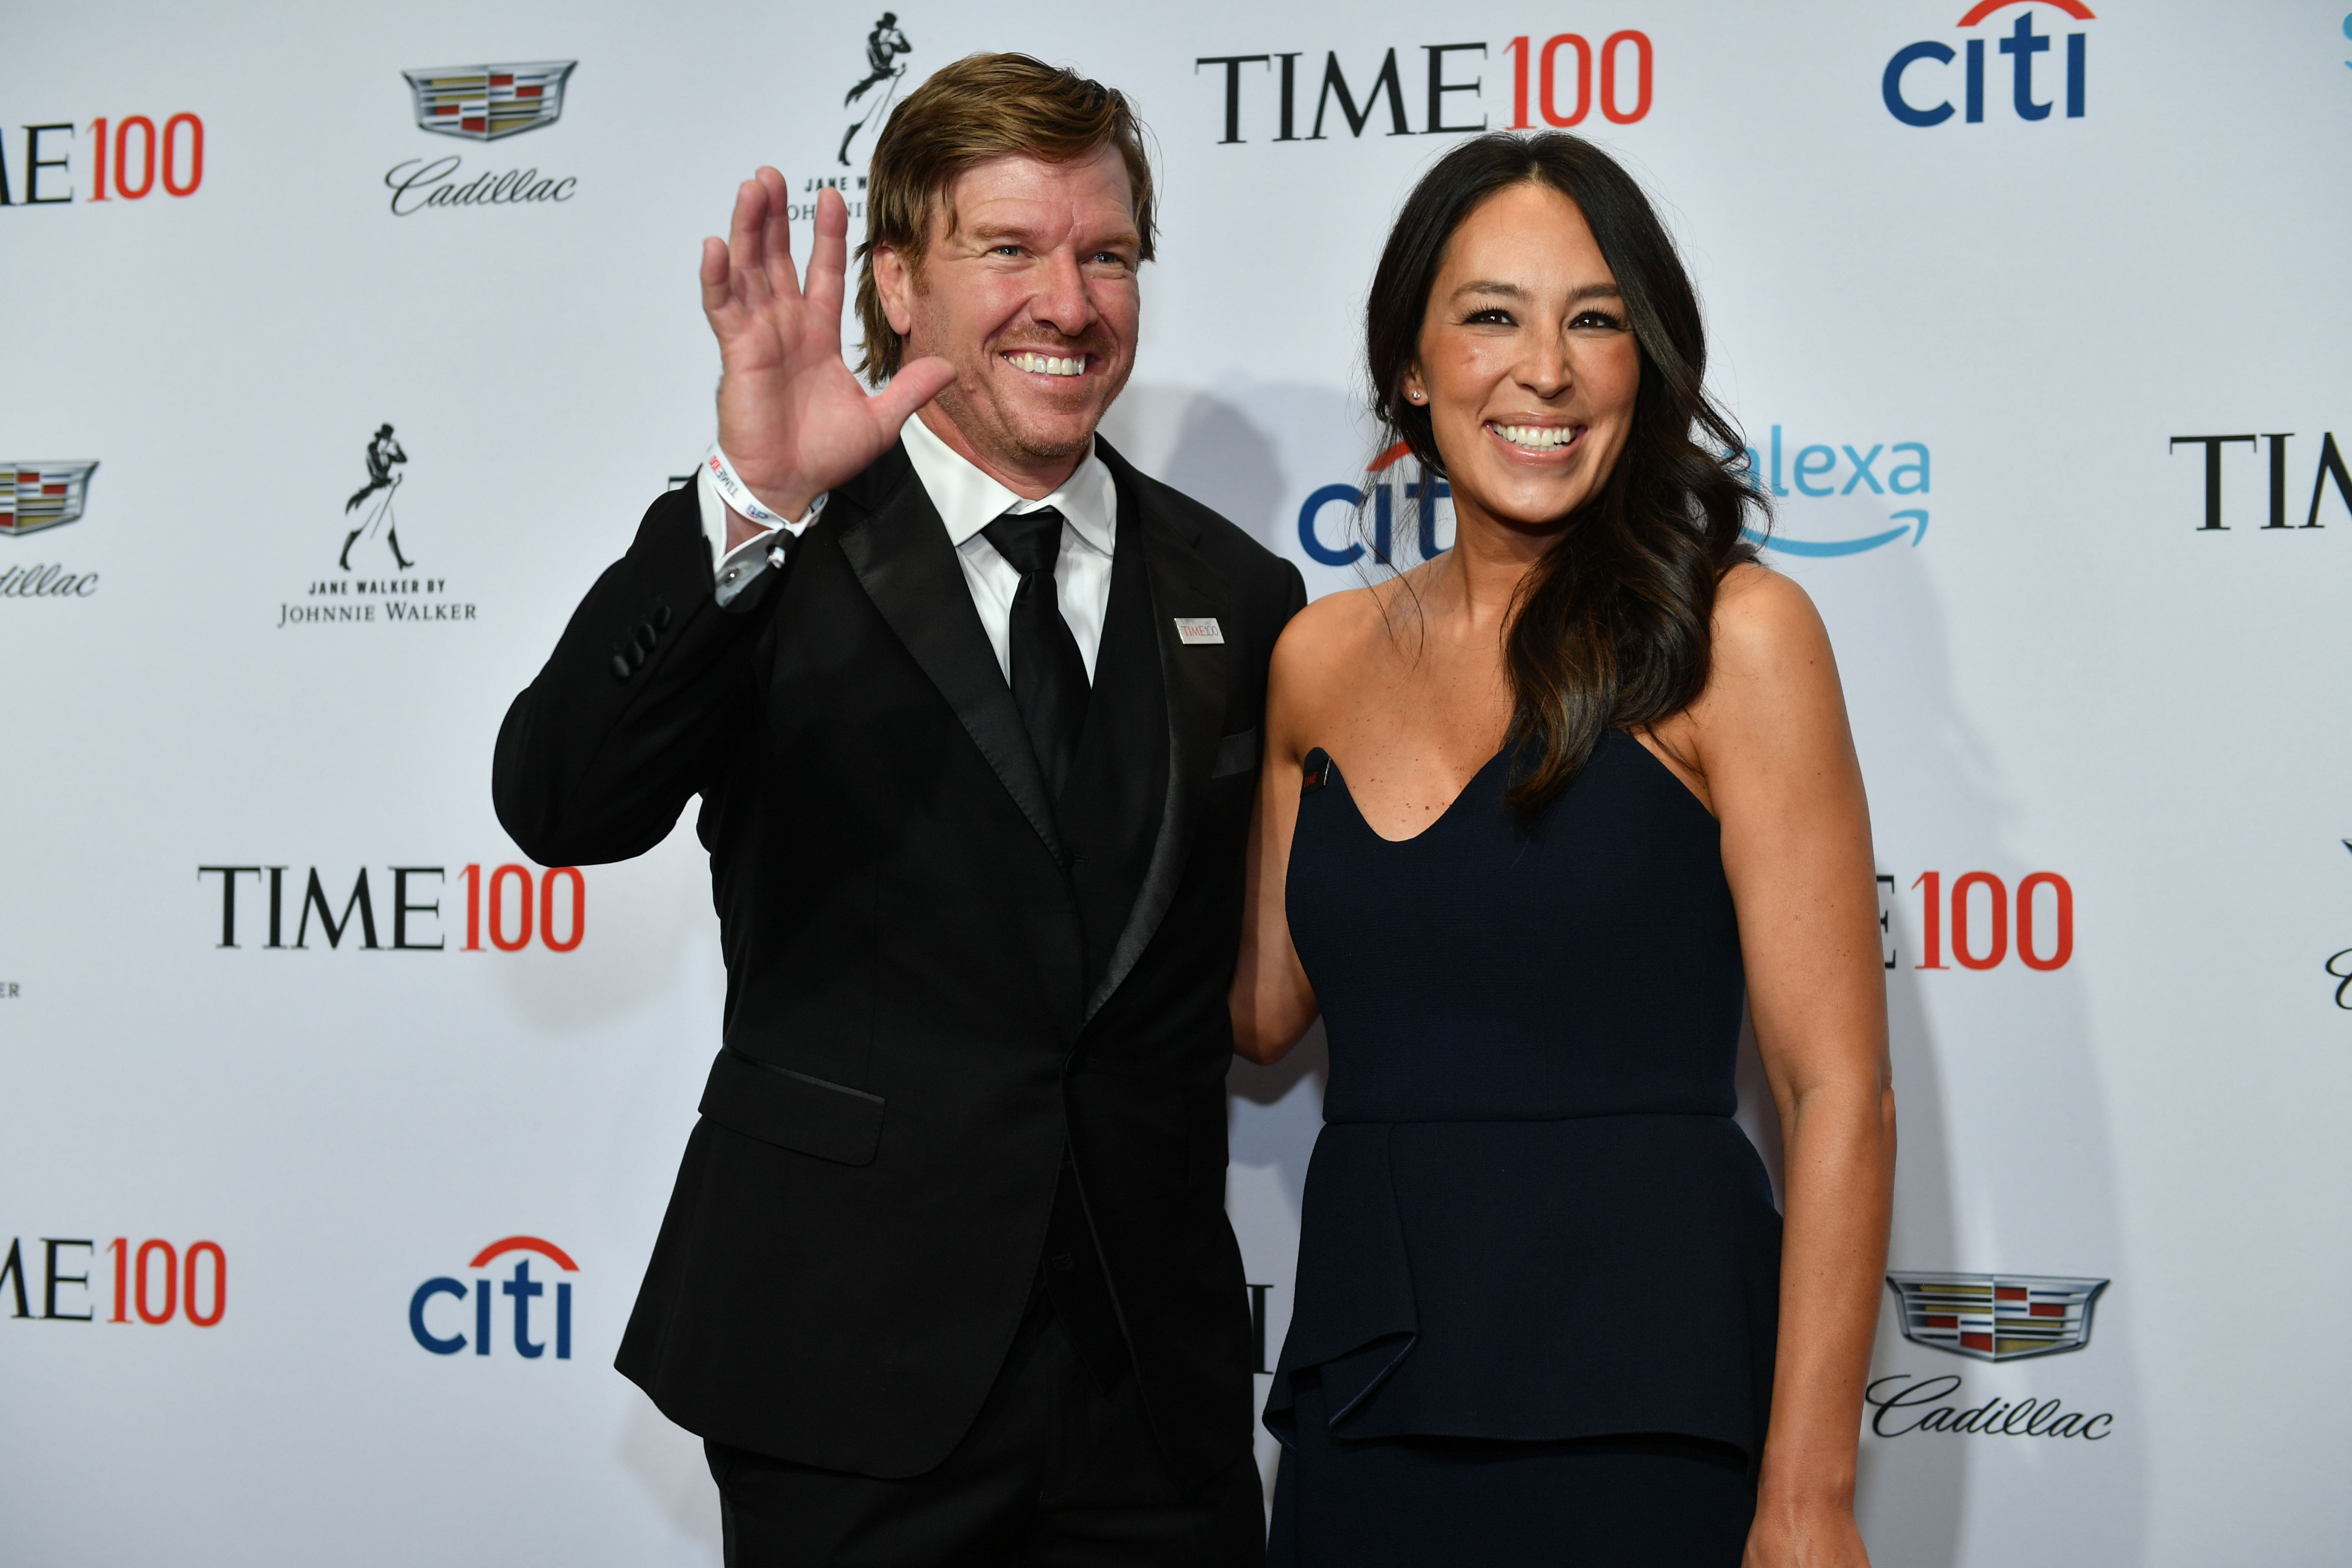 Joanna Gaines Chip Gaines Tv Network Is Launching October 2020,Best Artificial Christmas Trees For Heavy Ornaments